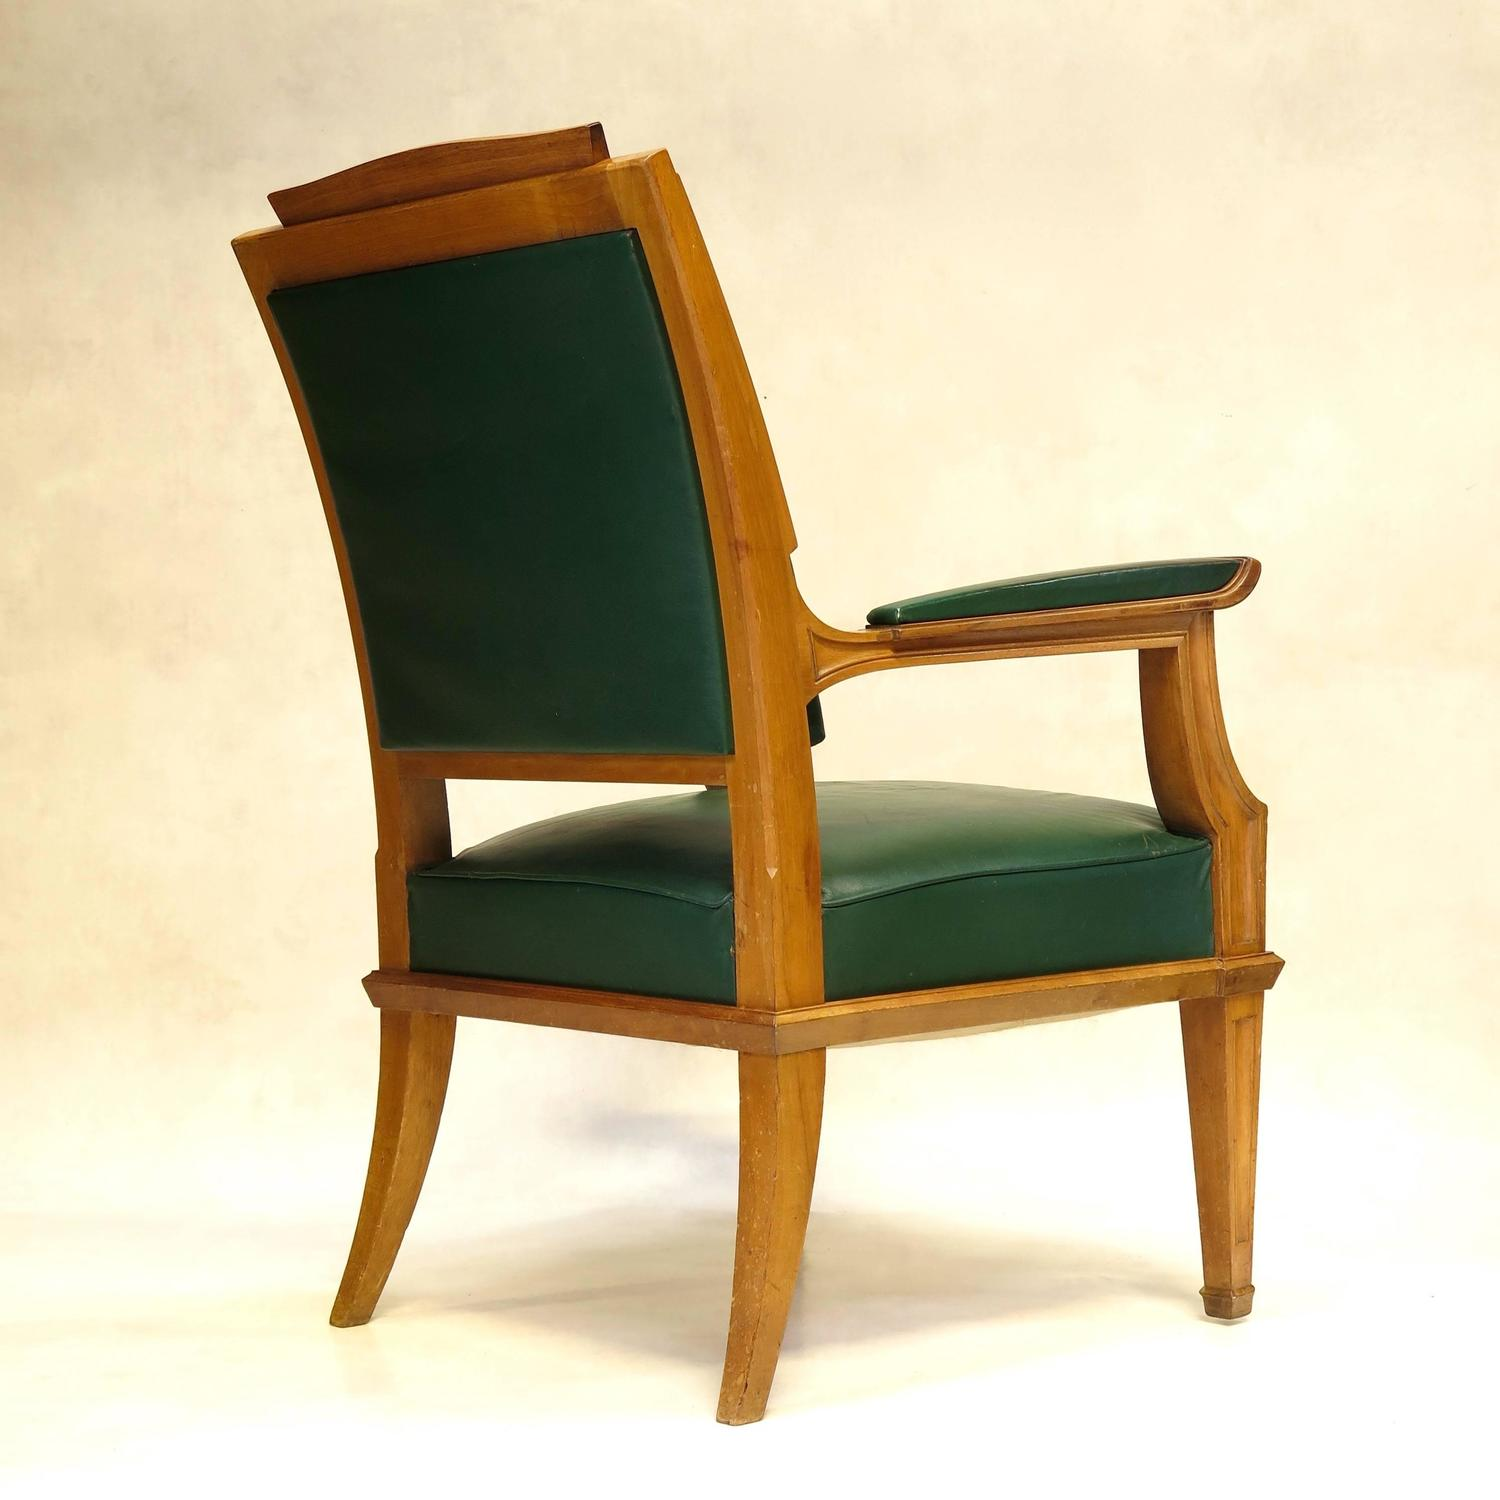 French 1940s Neoclassical Style Desk Chair For Sale at 1stdibs